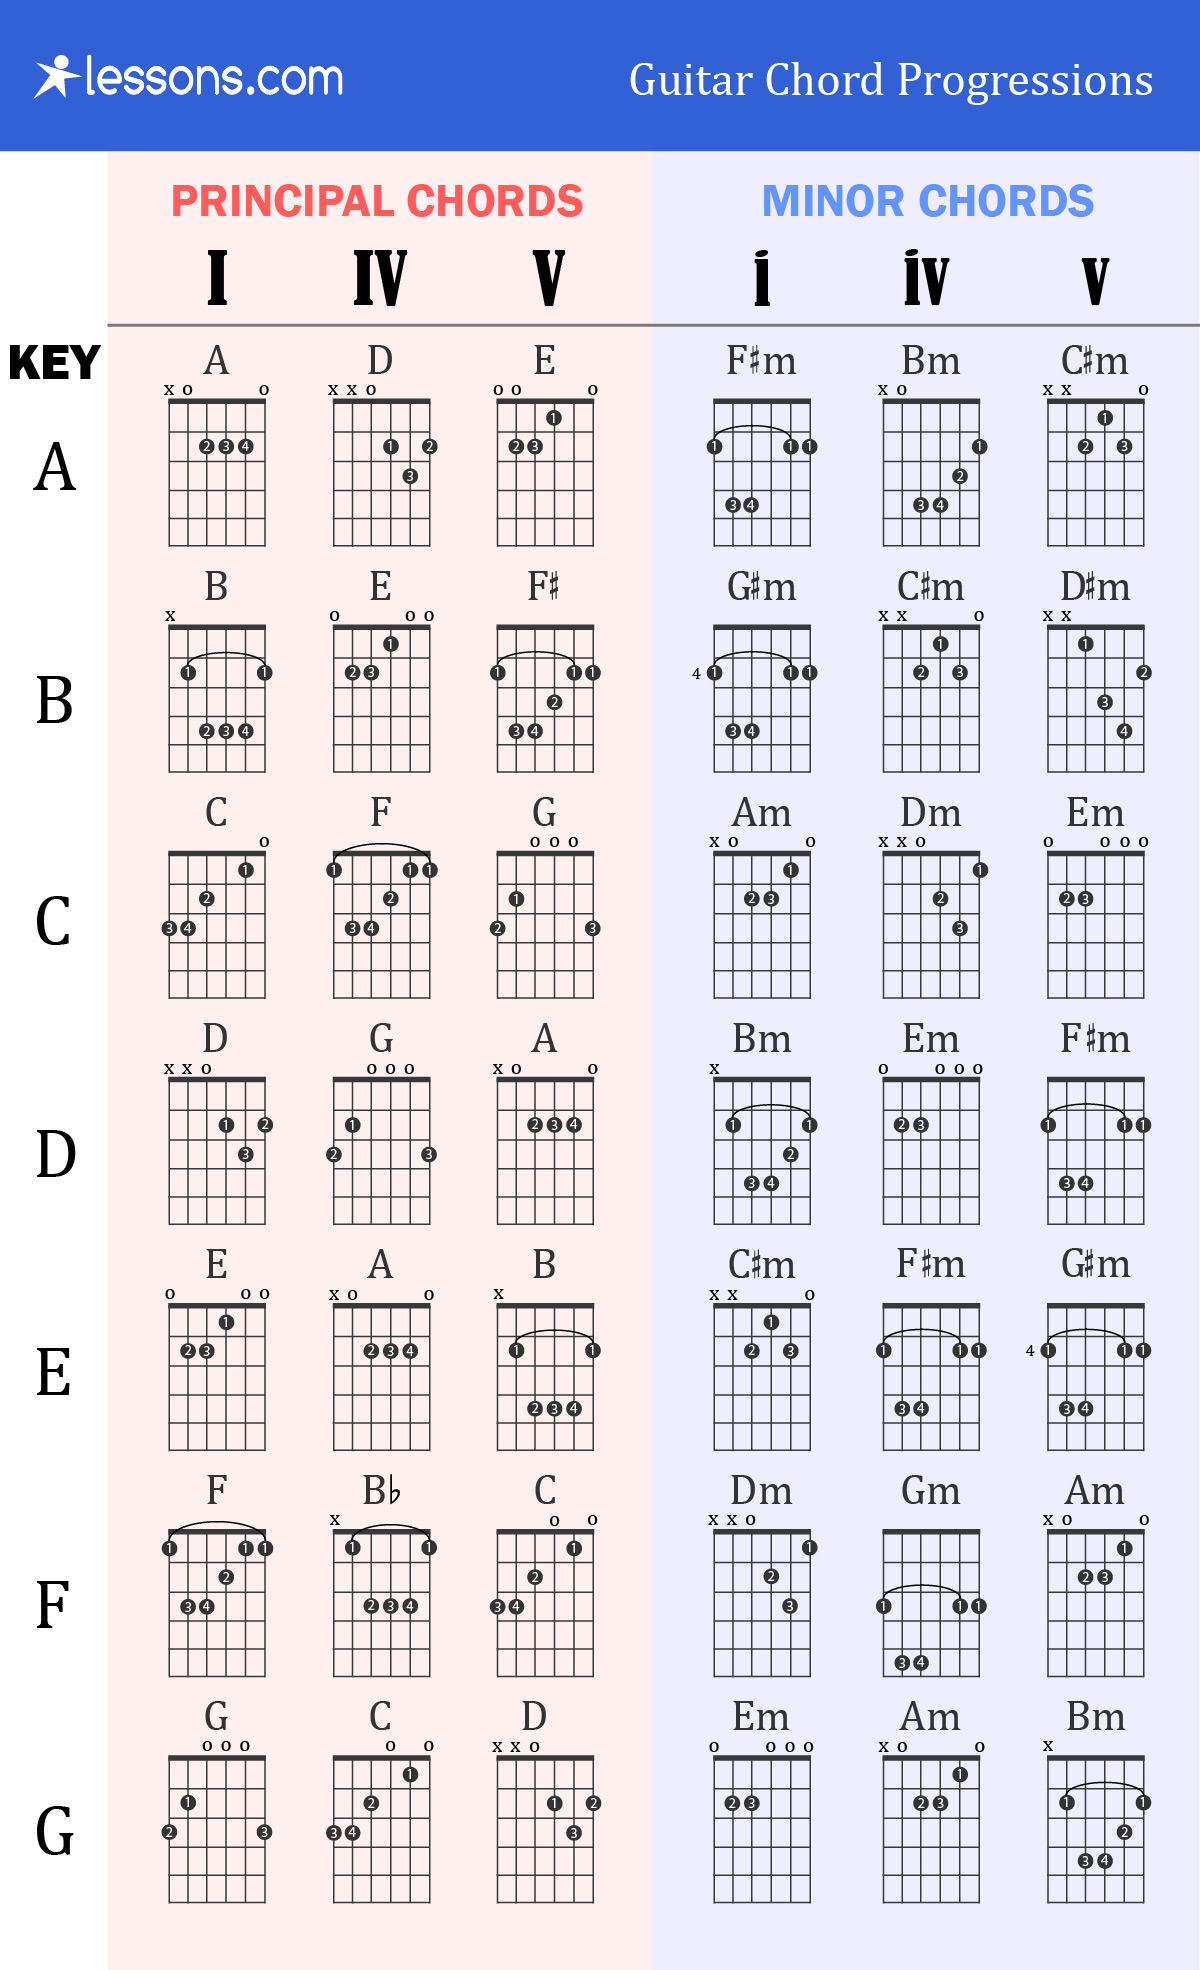 C M Guitar Chord Guitar Chords The Complete Guide With Charts How Tos More